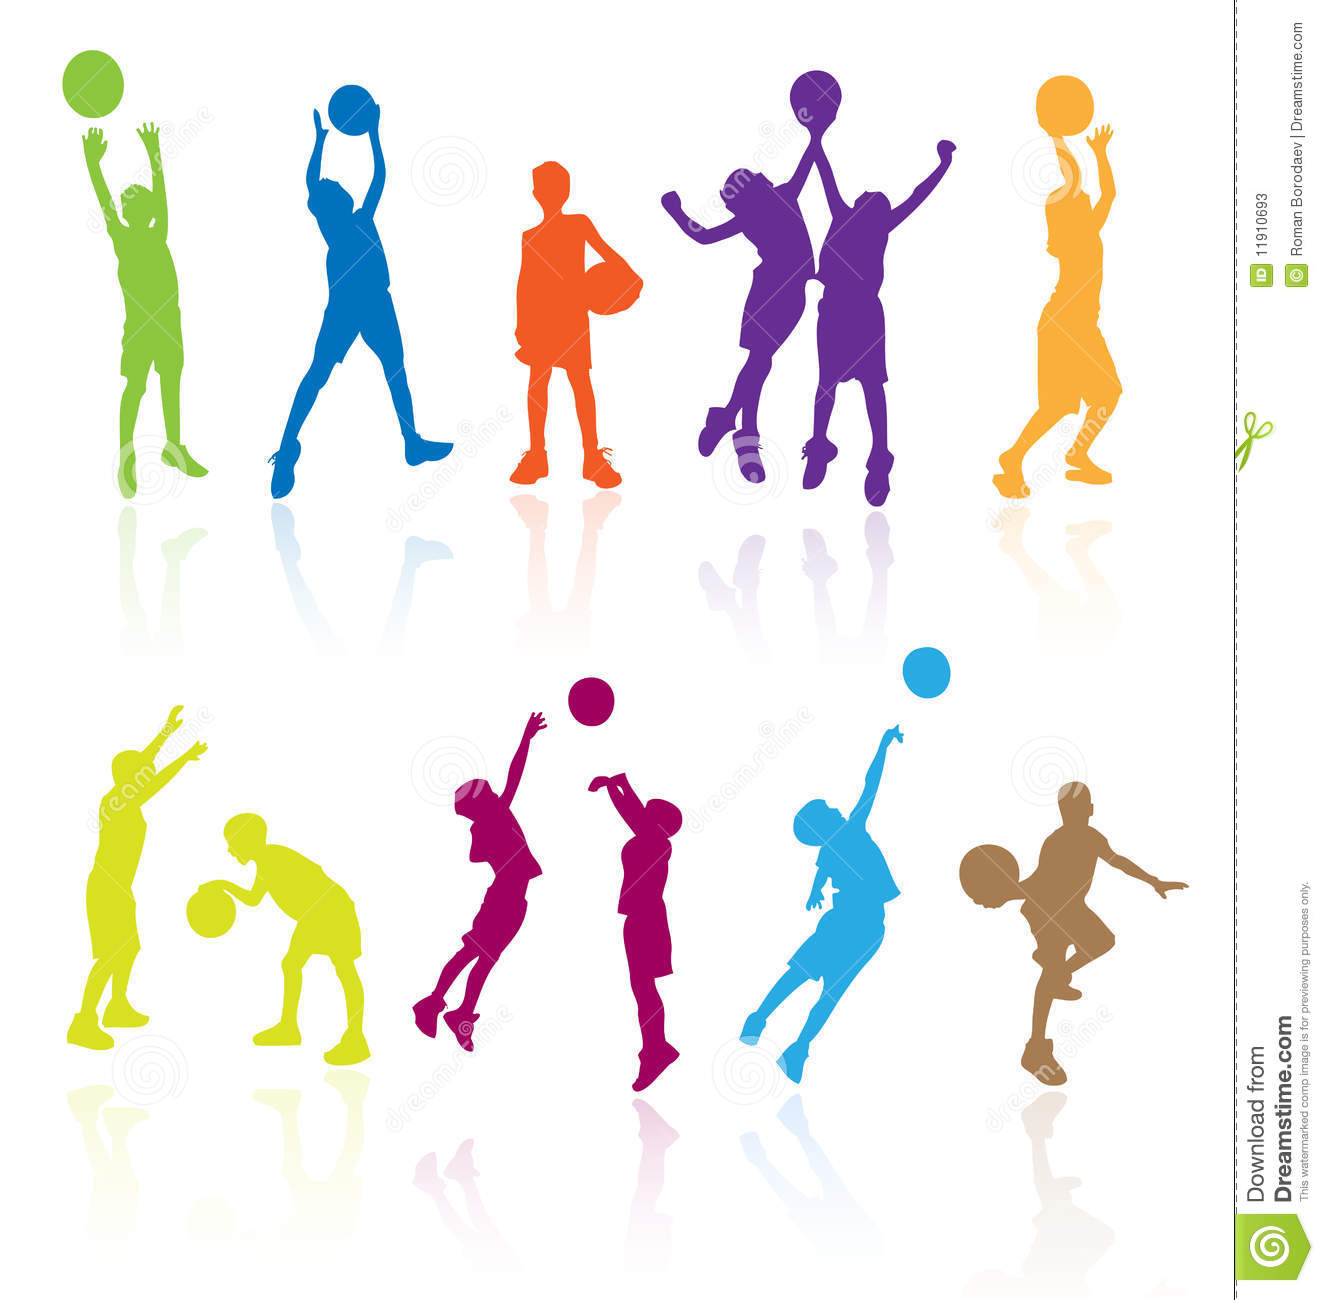 Kids playing basketball kid play sports child children silhouettes silhouette girls girls boy boys player players basket ball game